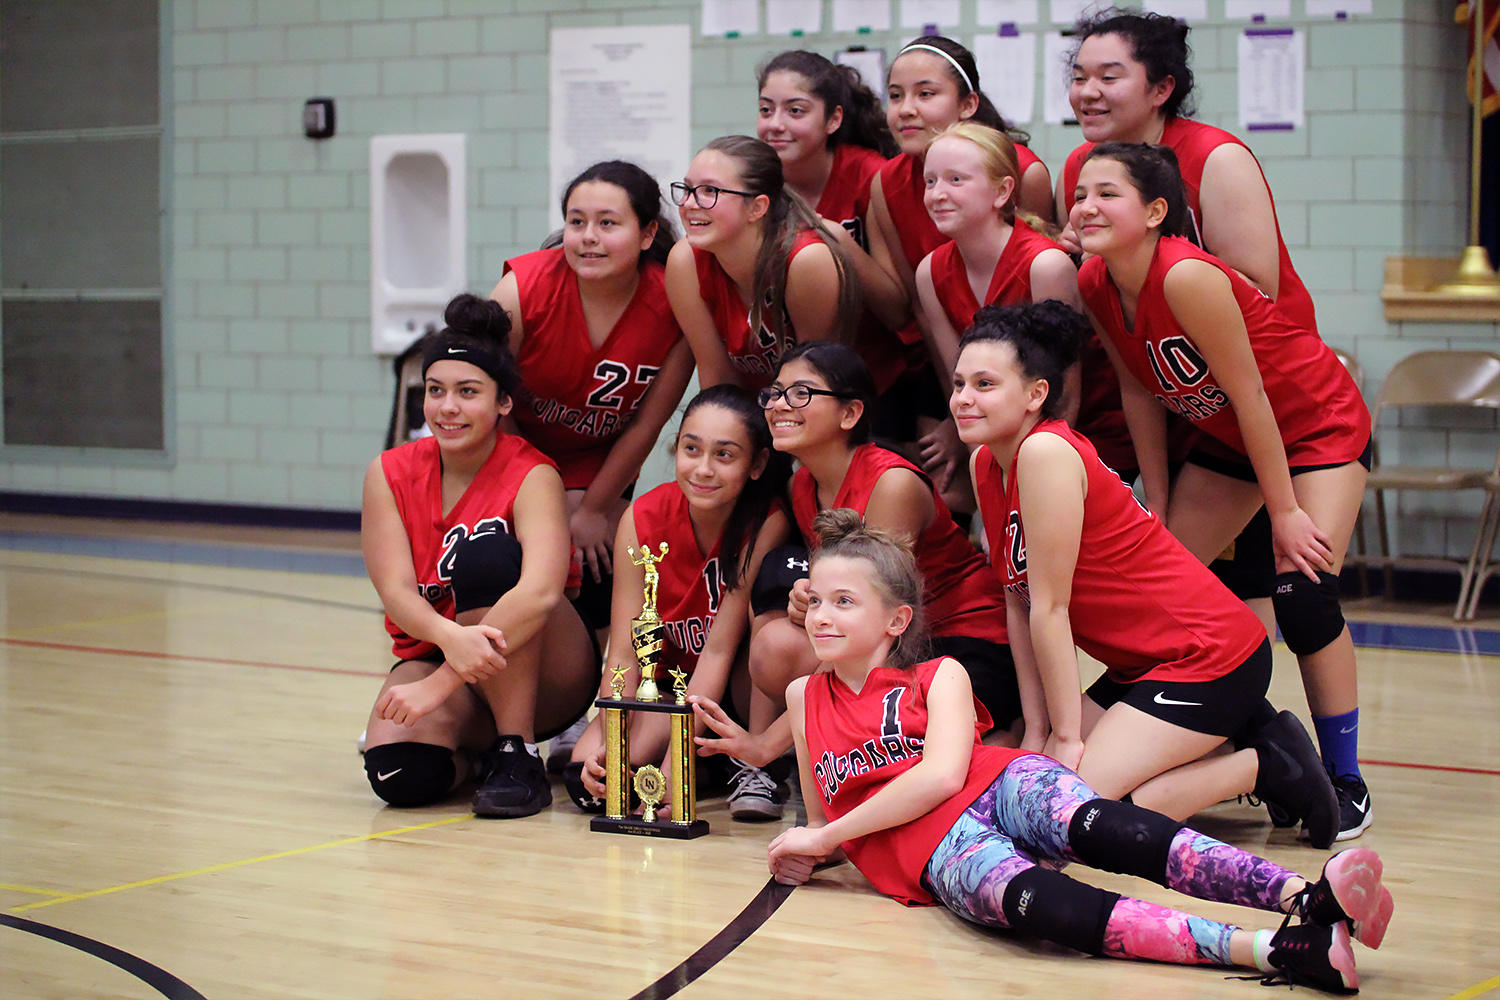 Elm 7th graders pose with their team trophy.